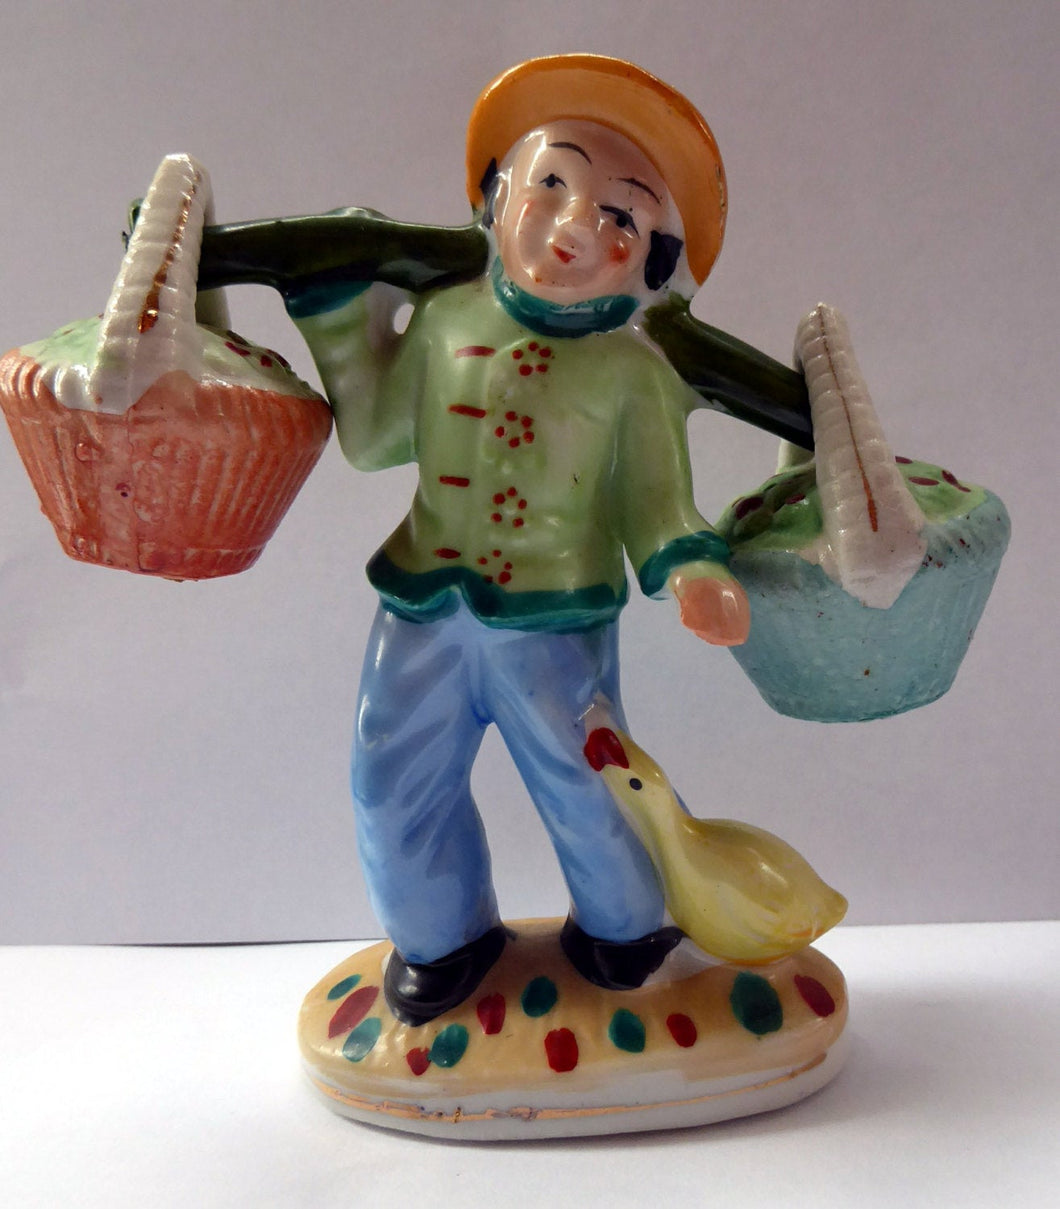 1960s Salt and Pepper Set or Cruet; Taking the Form of a Chinese Man Carrying Baskets on a Pole